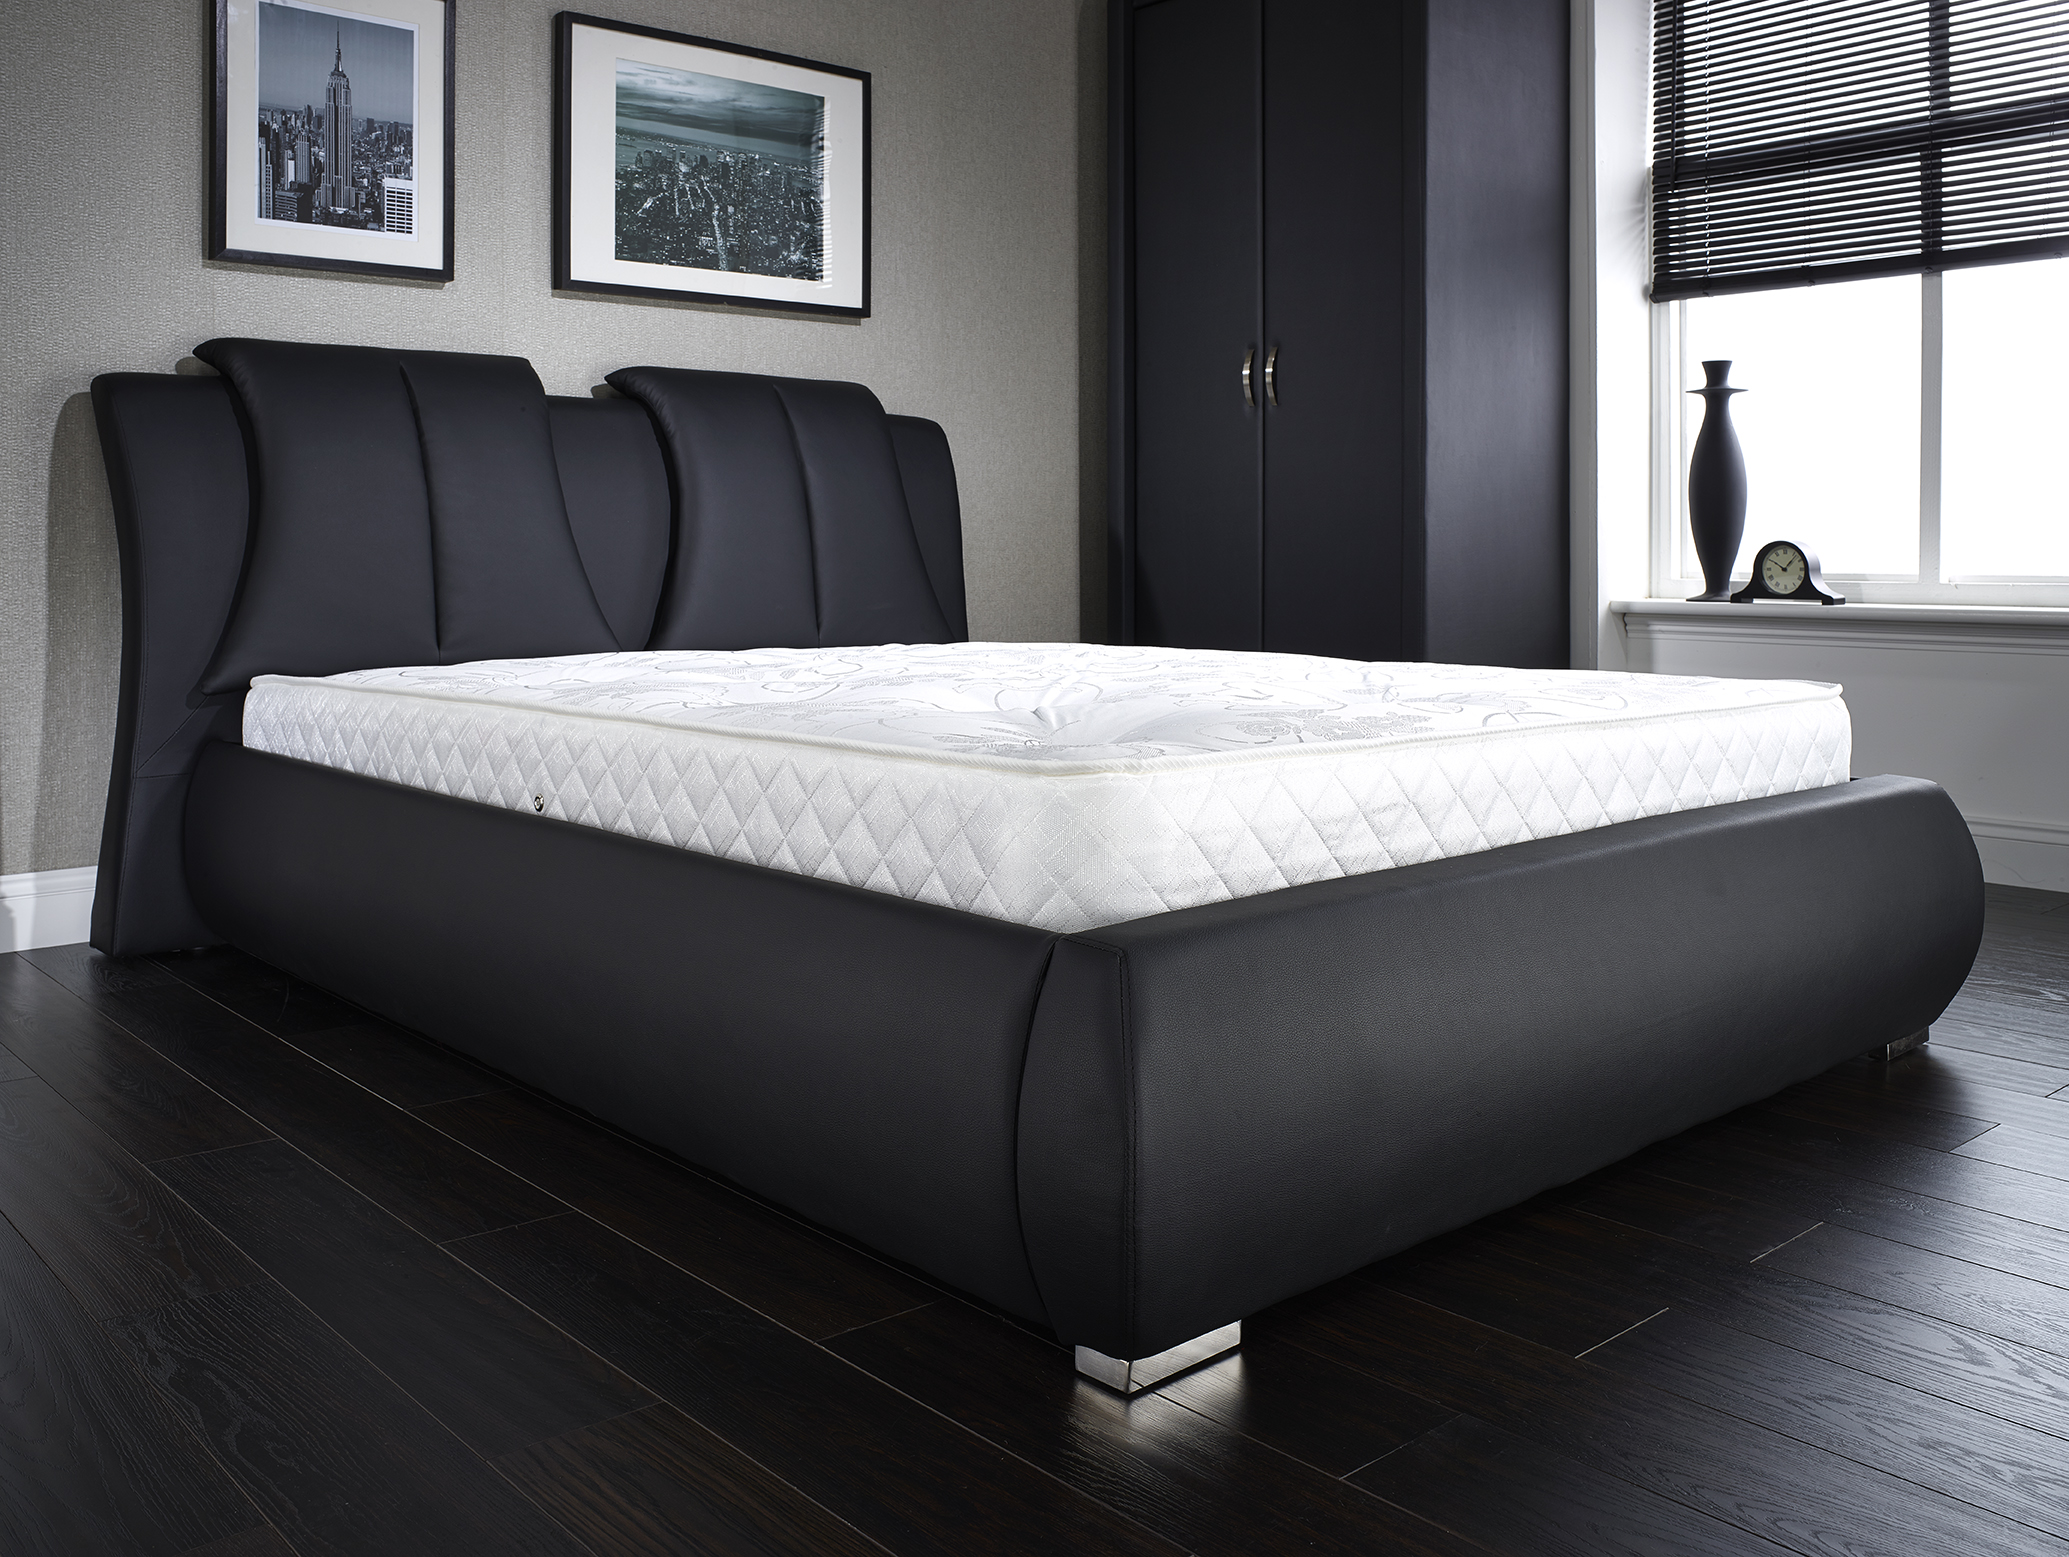 Kingsize Bed The Italian Furniture Company Leeds Ltd Importers And